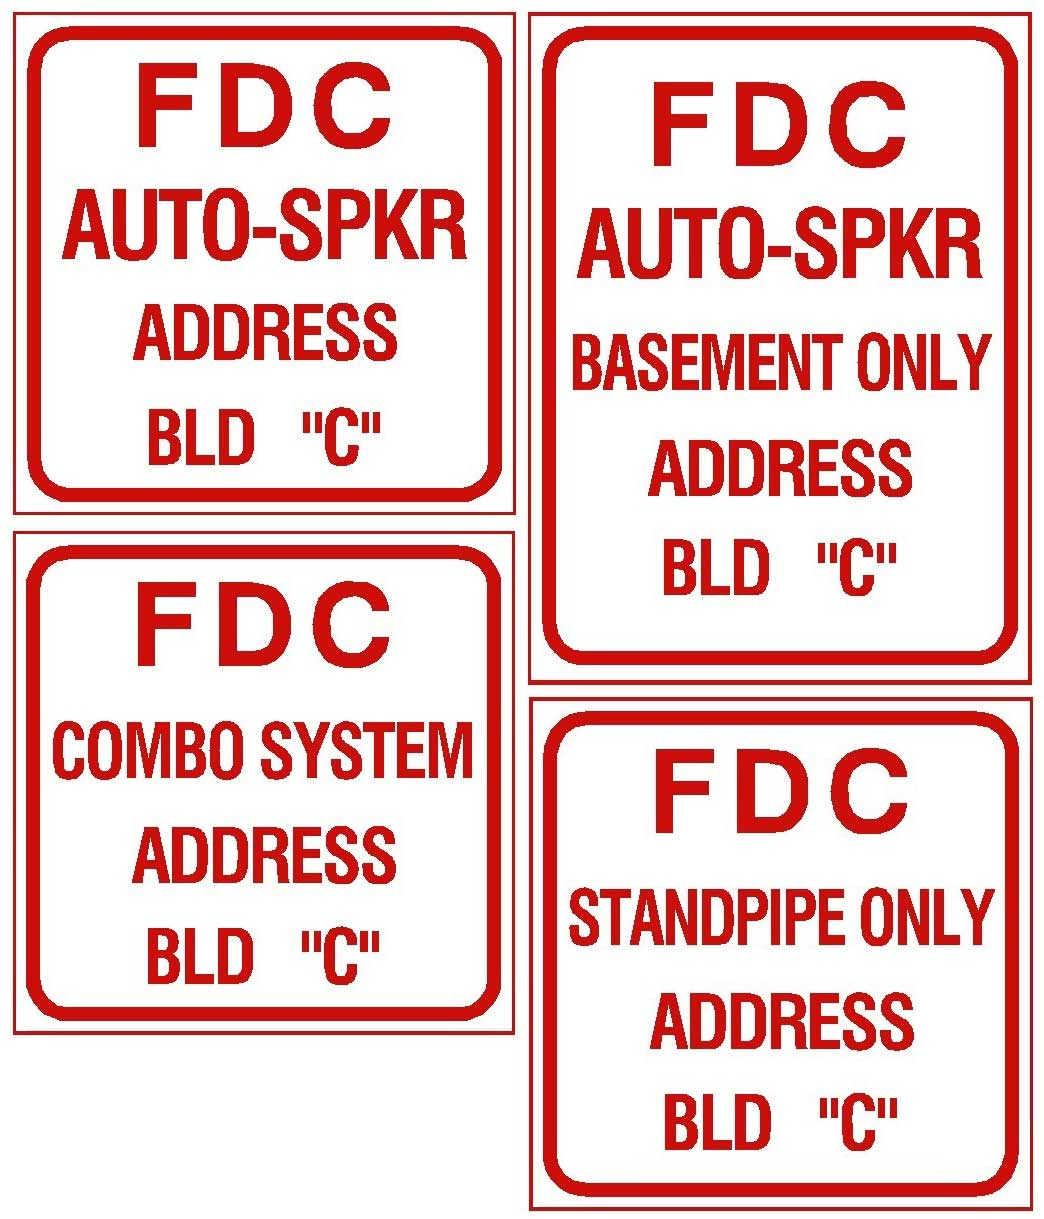 fdc signs2